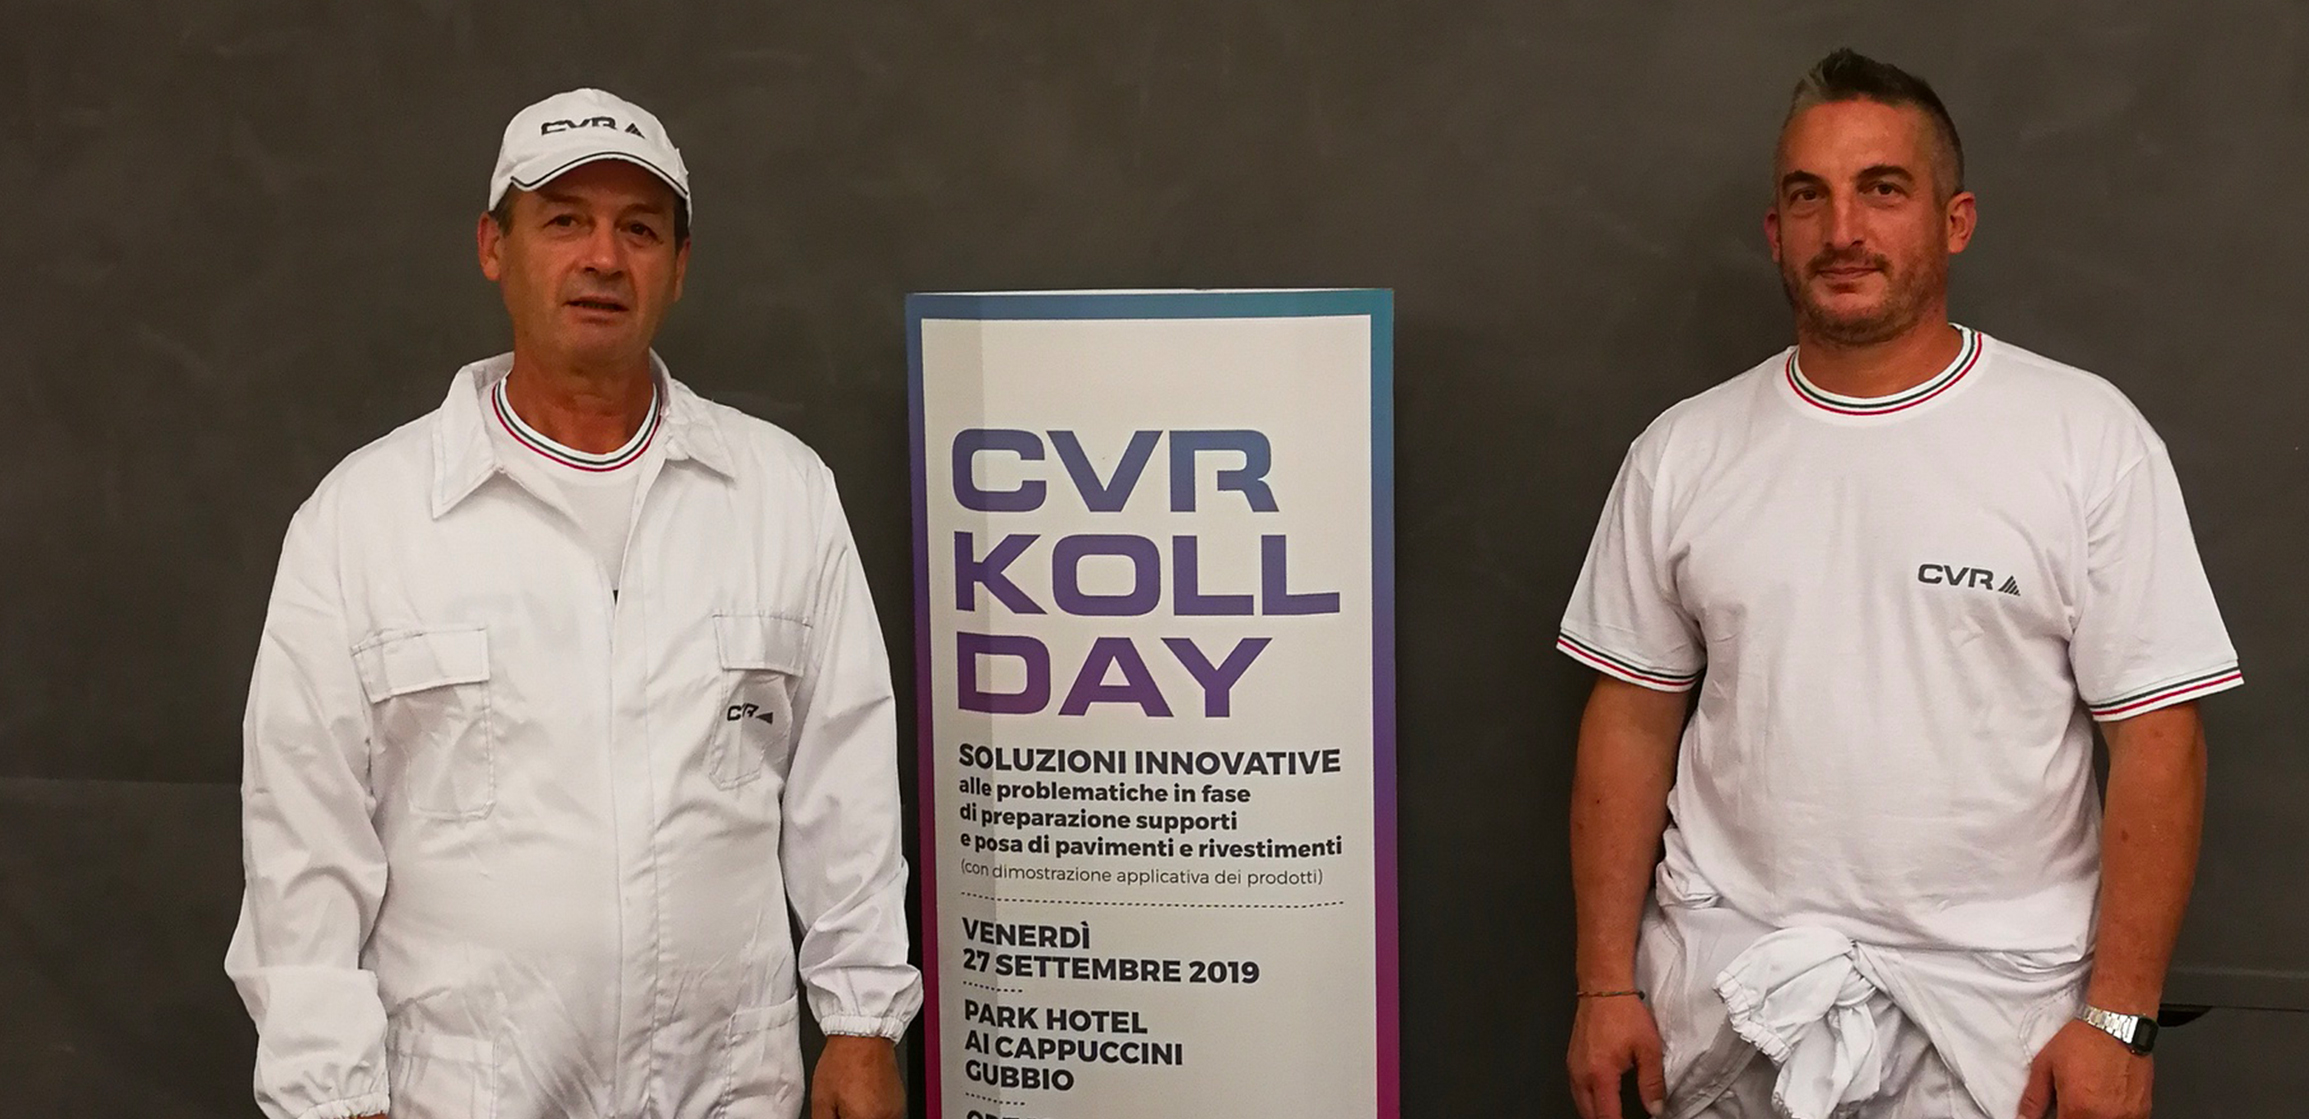 CVRKOLL DAY 2019 for Gubbio